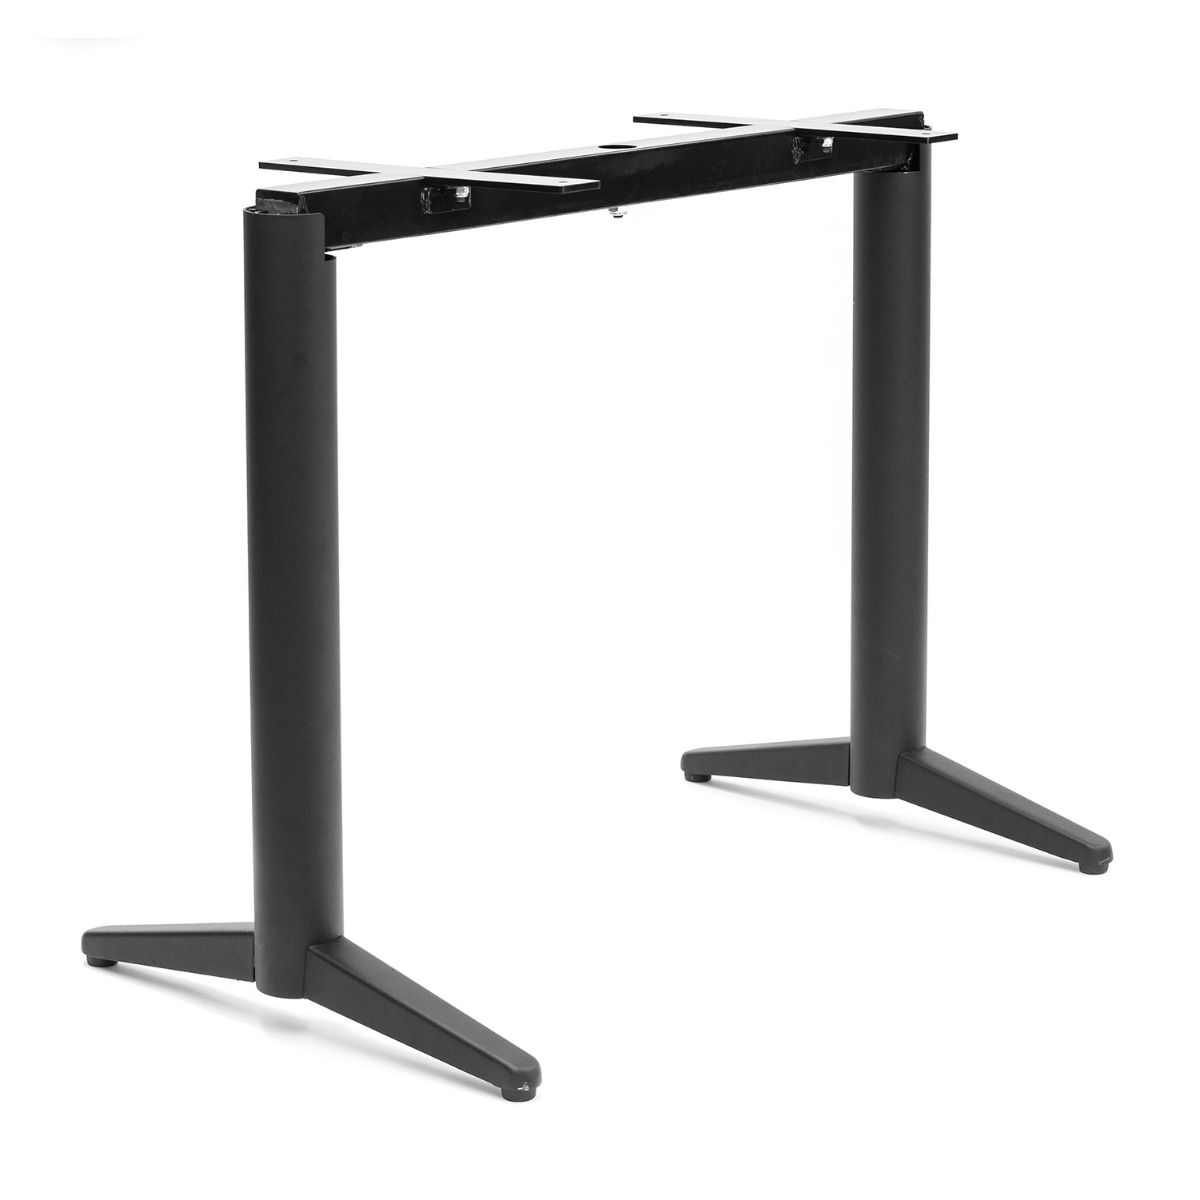 No-Rock Trail 2 X 2 - Self Stabilizing Table Base